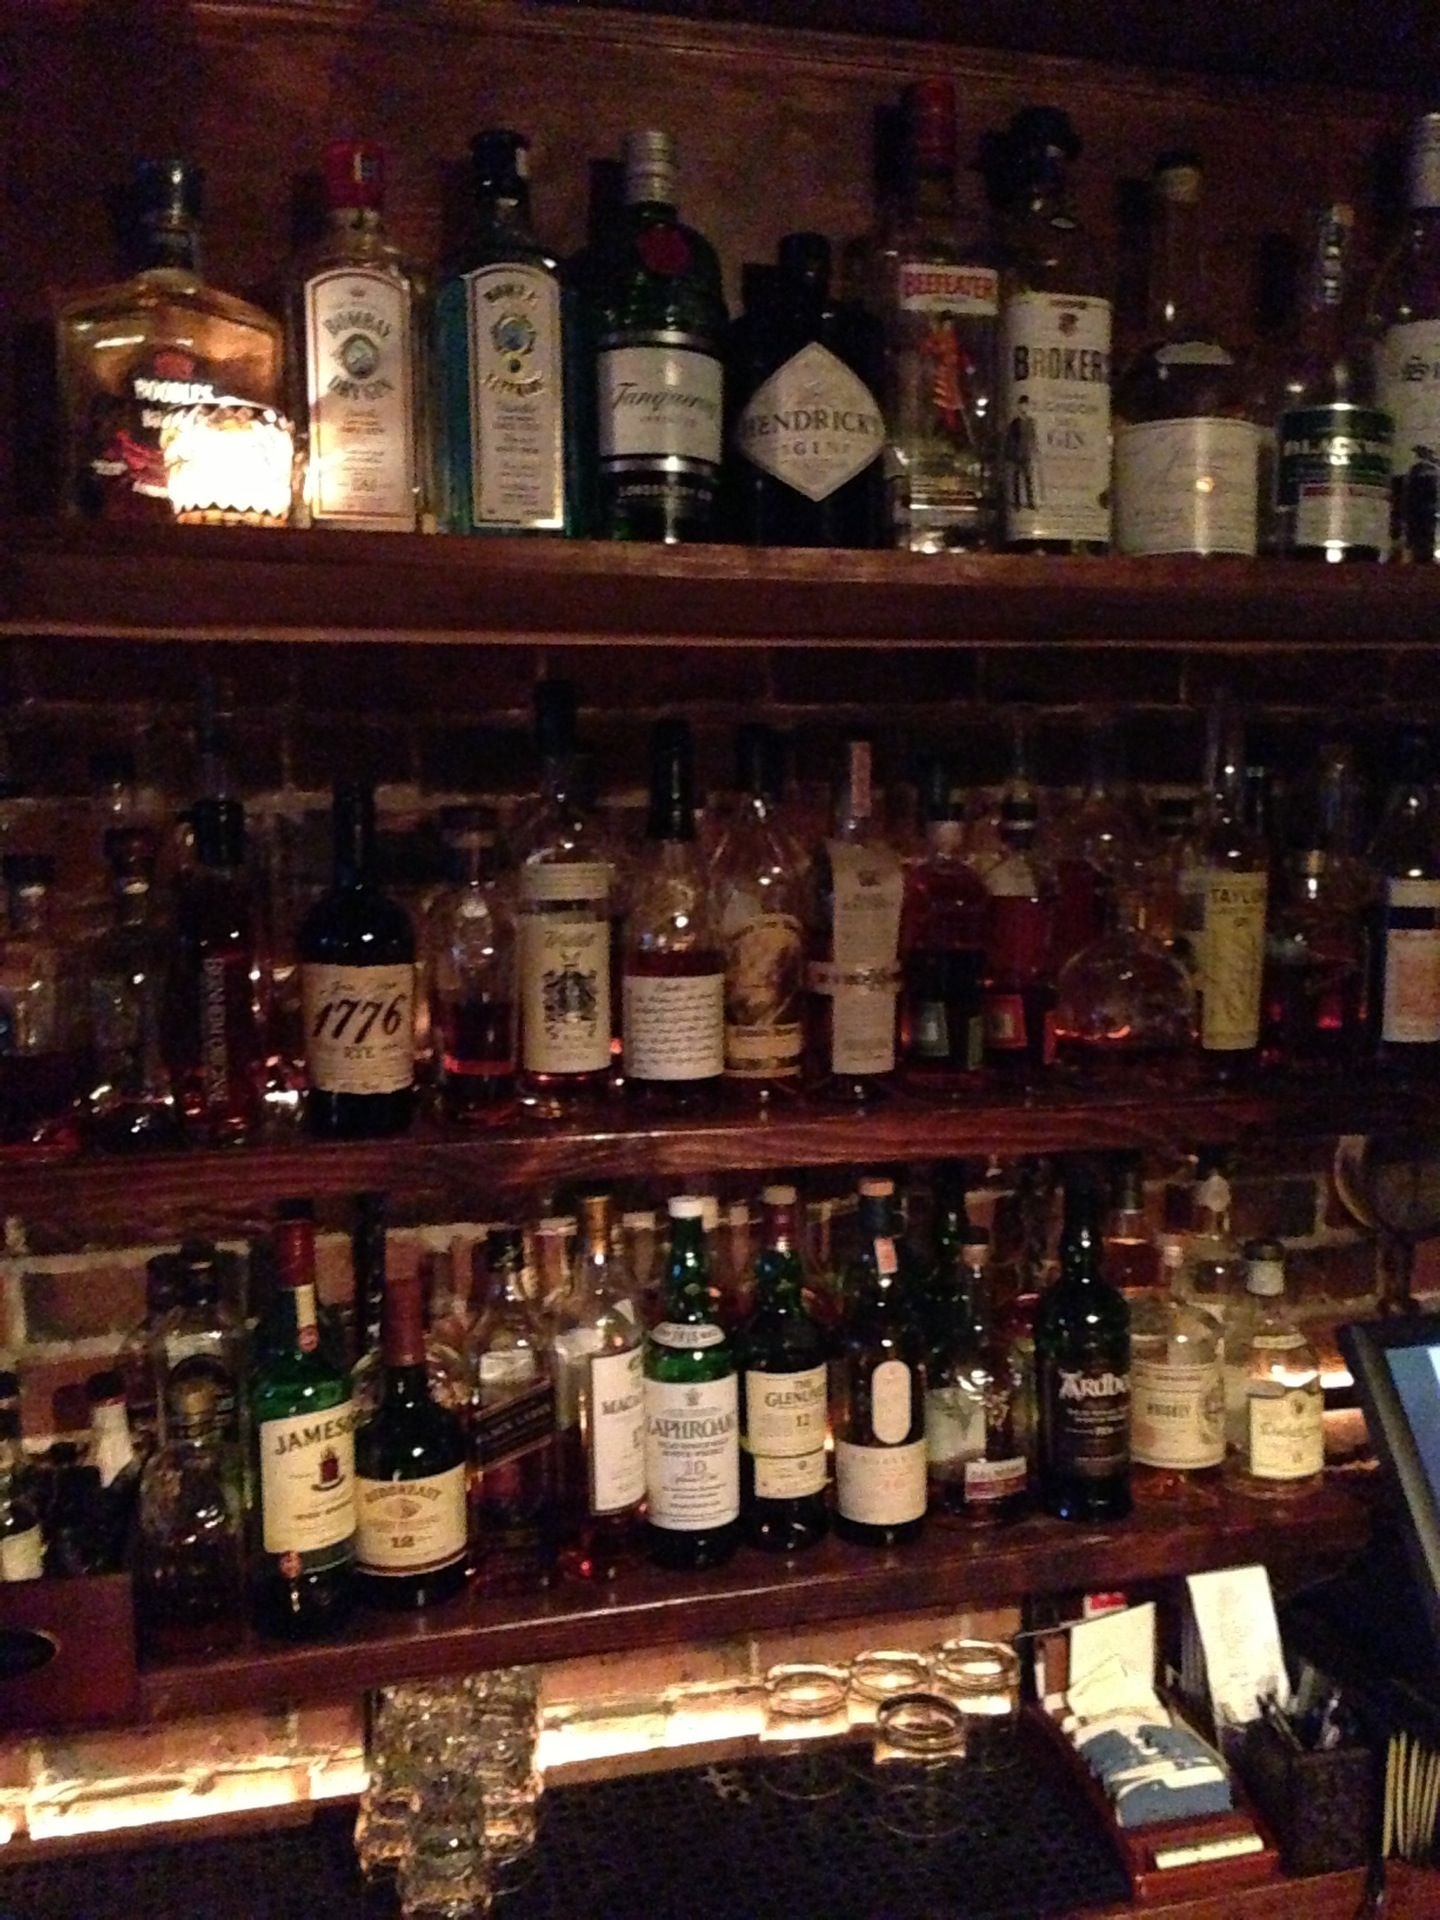 Bathtub Gin U0026 Co. In Seattle, WA. Not Everyone Realizes Thereu0027s An Entire  Downstairs Area In This Super Dark, Romantic Belltown Alley Speakeasy.